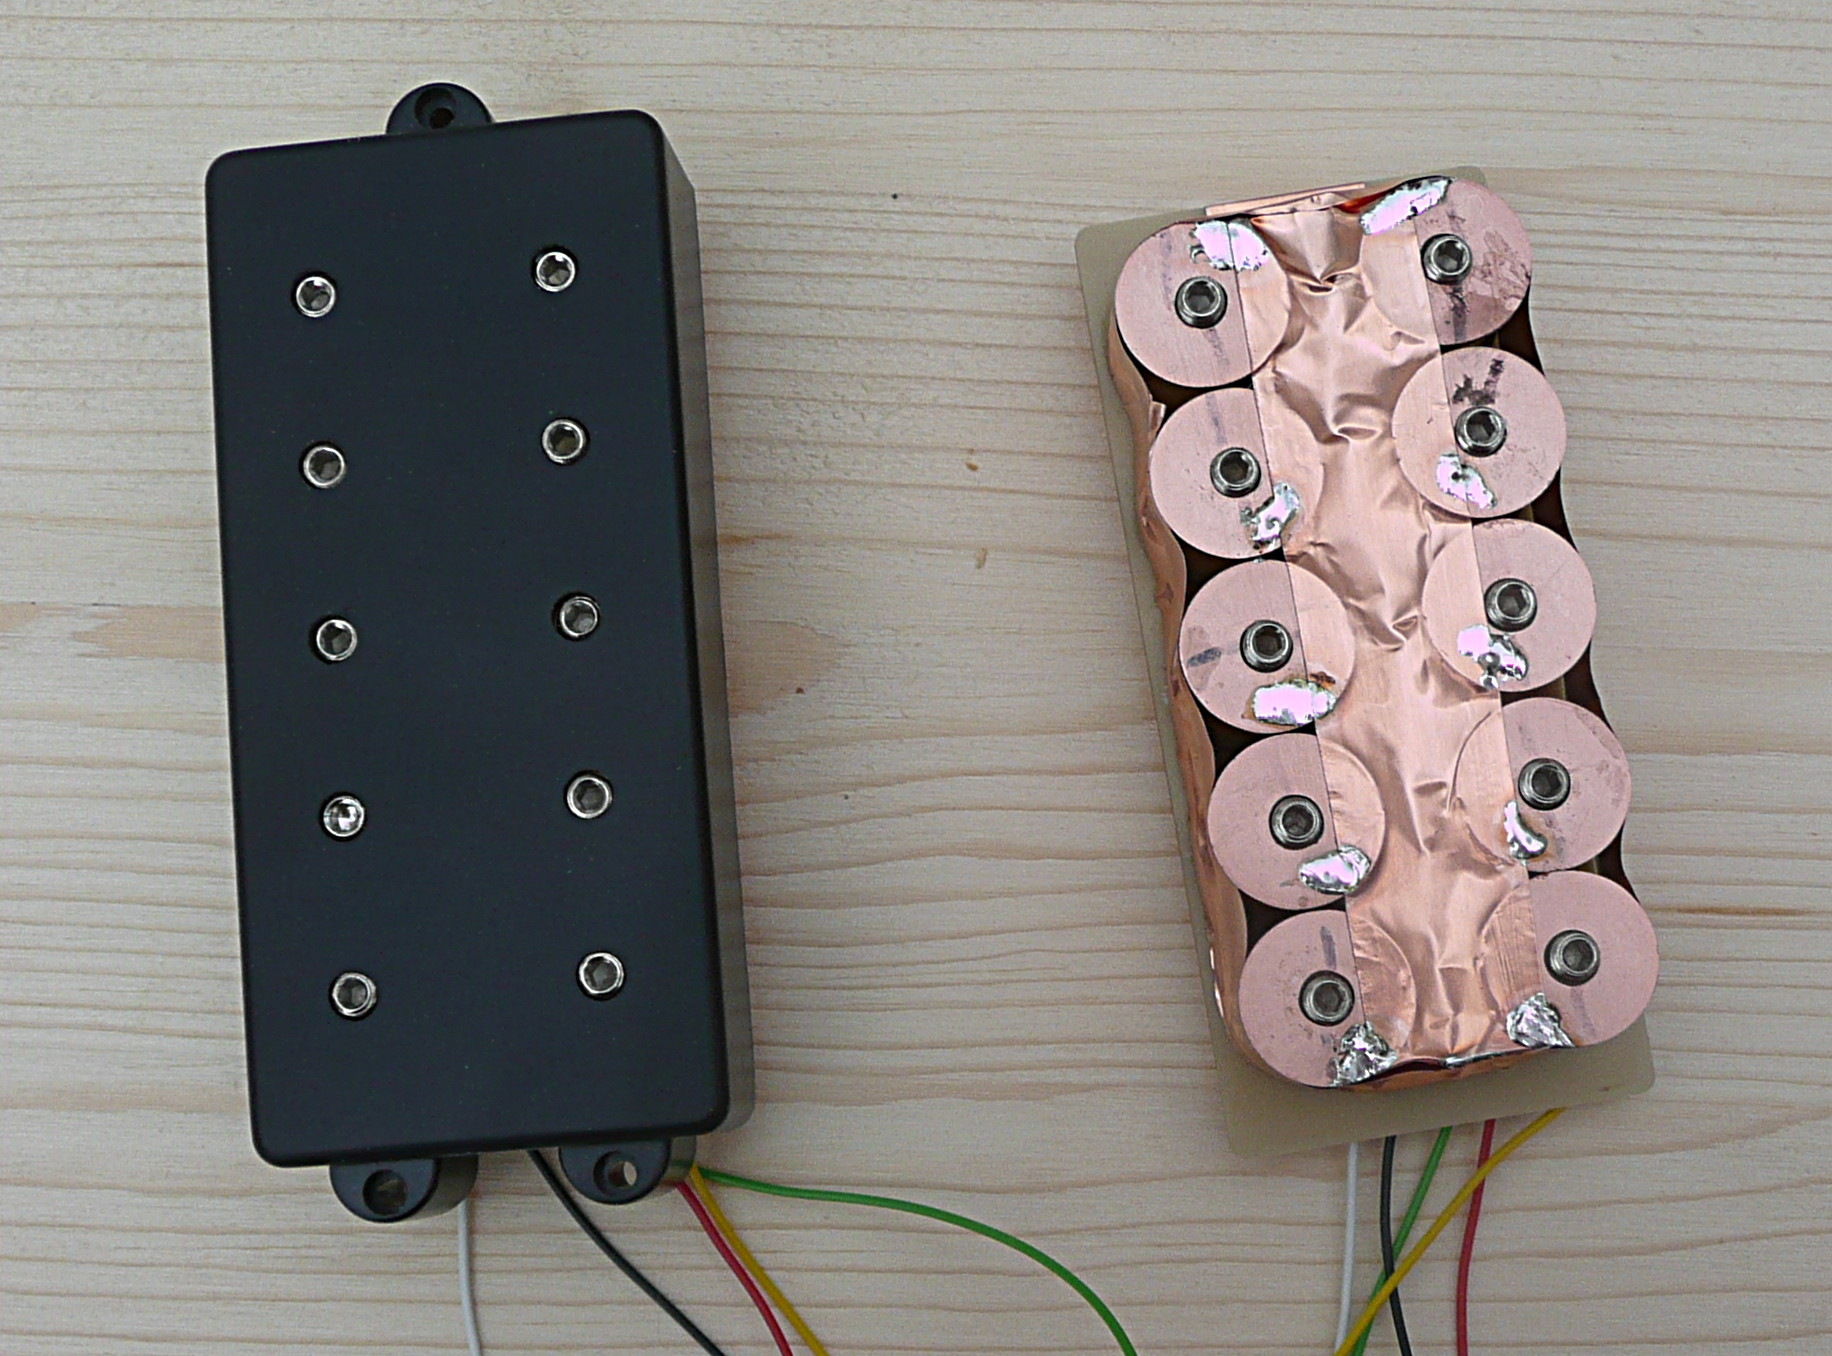 Multicoil - Here you See the W-Bucker as a multi-coil in an MM housing. So it fits into a MusicMan bass as well.